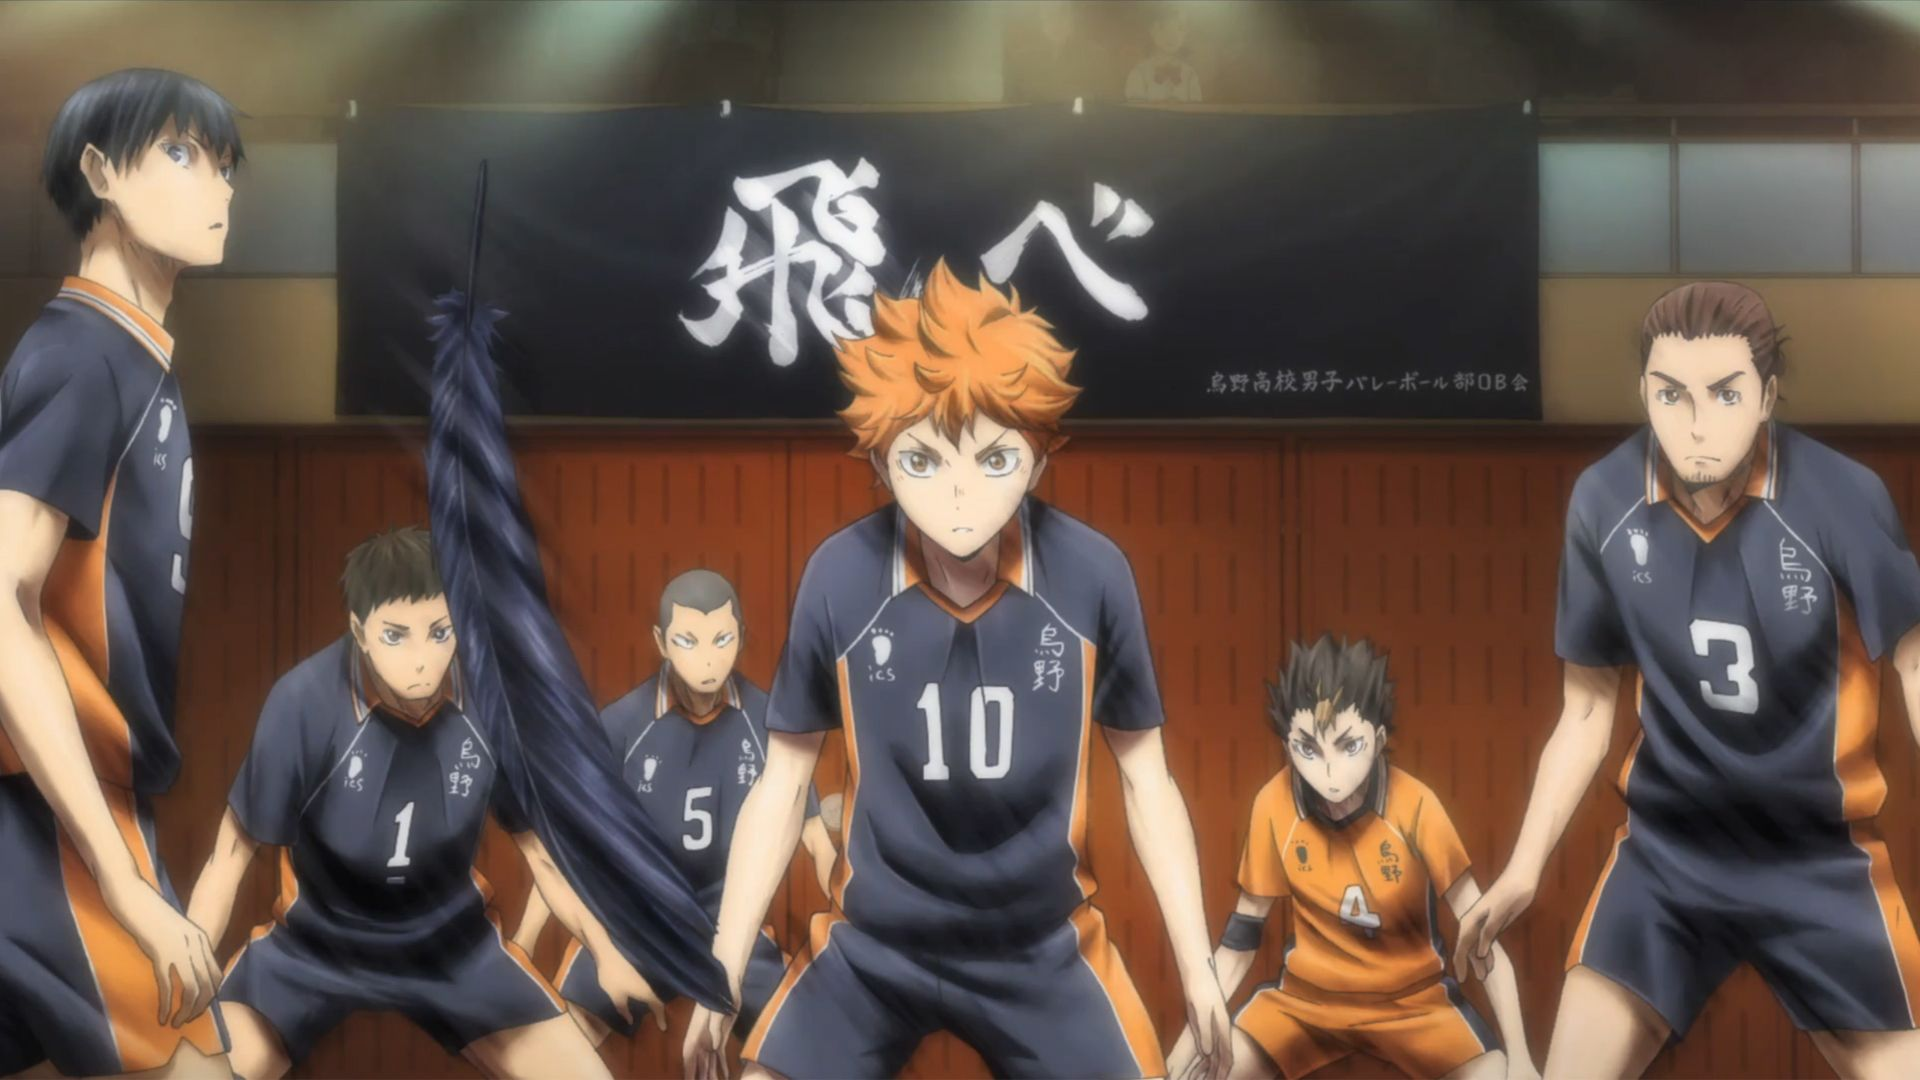 Fly Hd Wallpaper From Gallsource Com Haikyuu Haikyu Stage Play